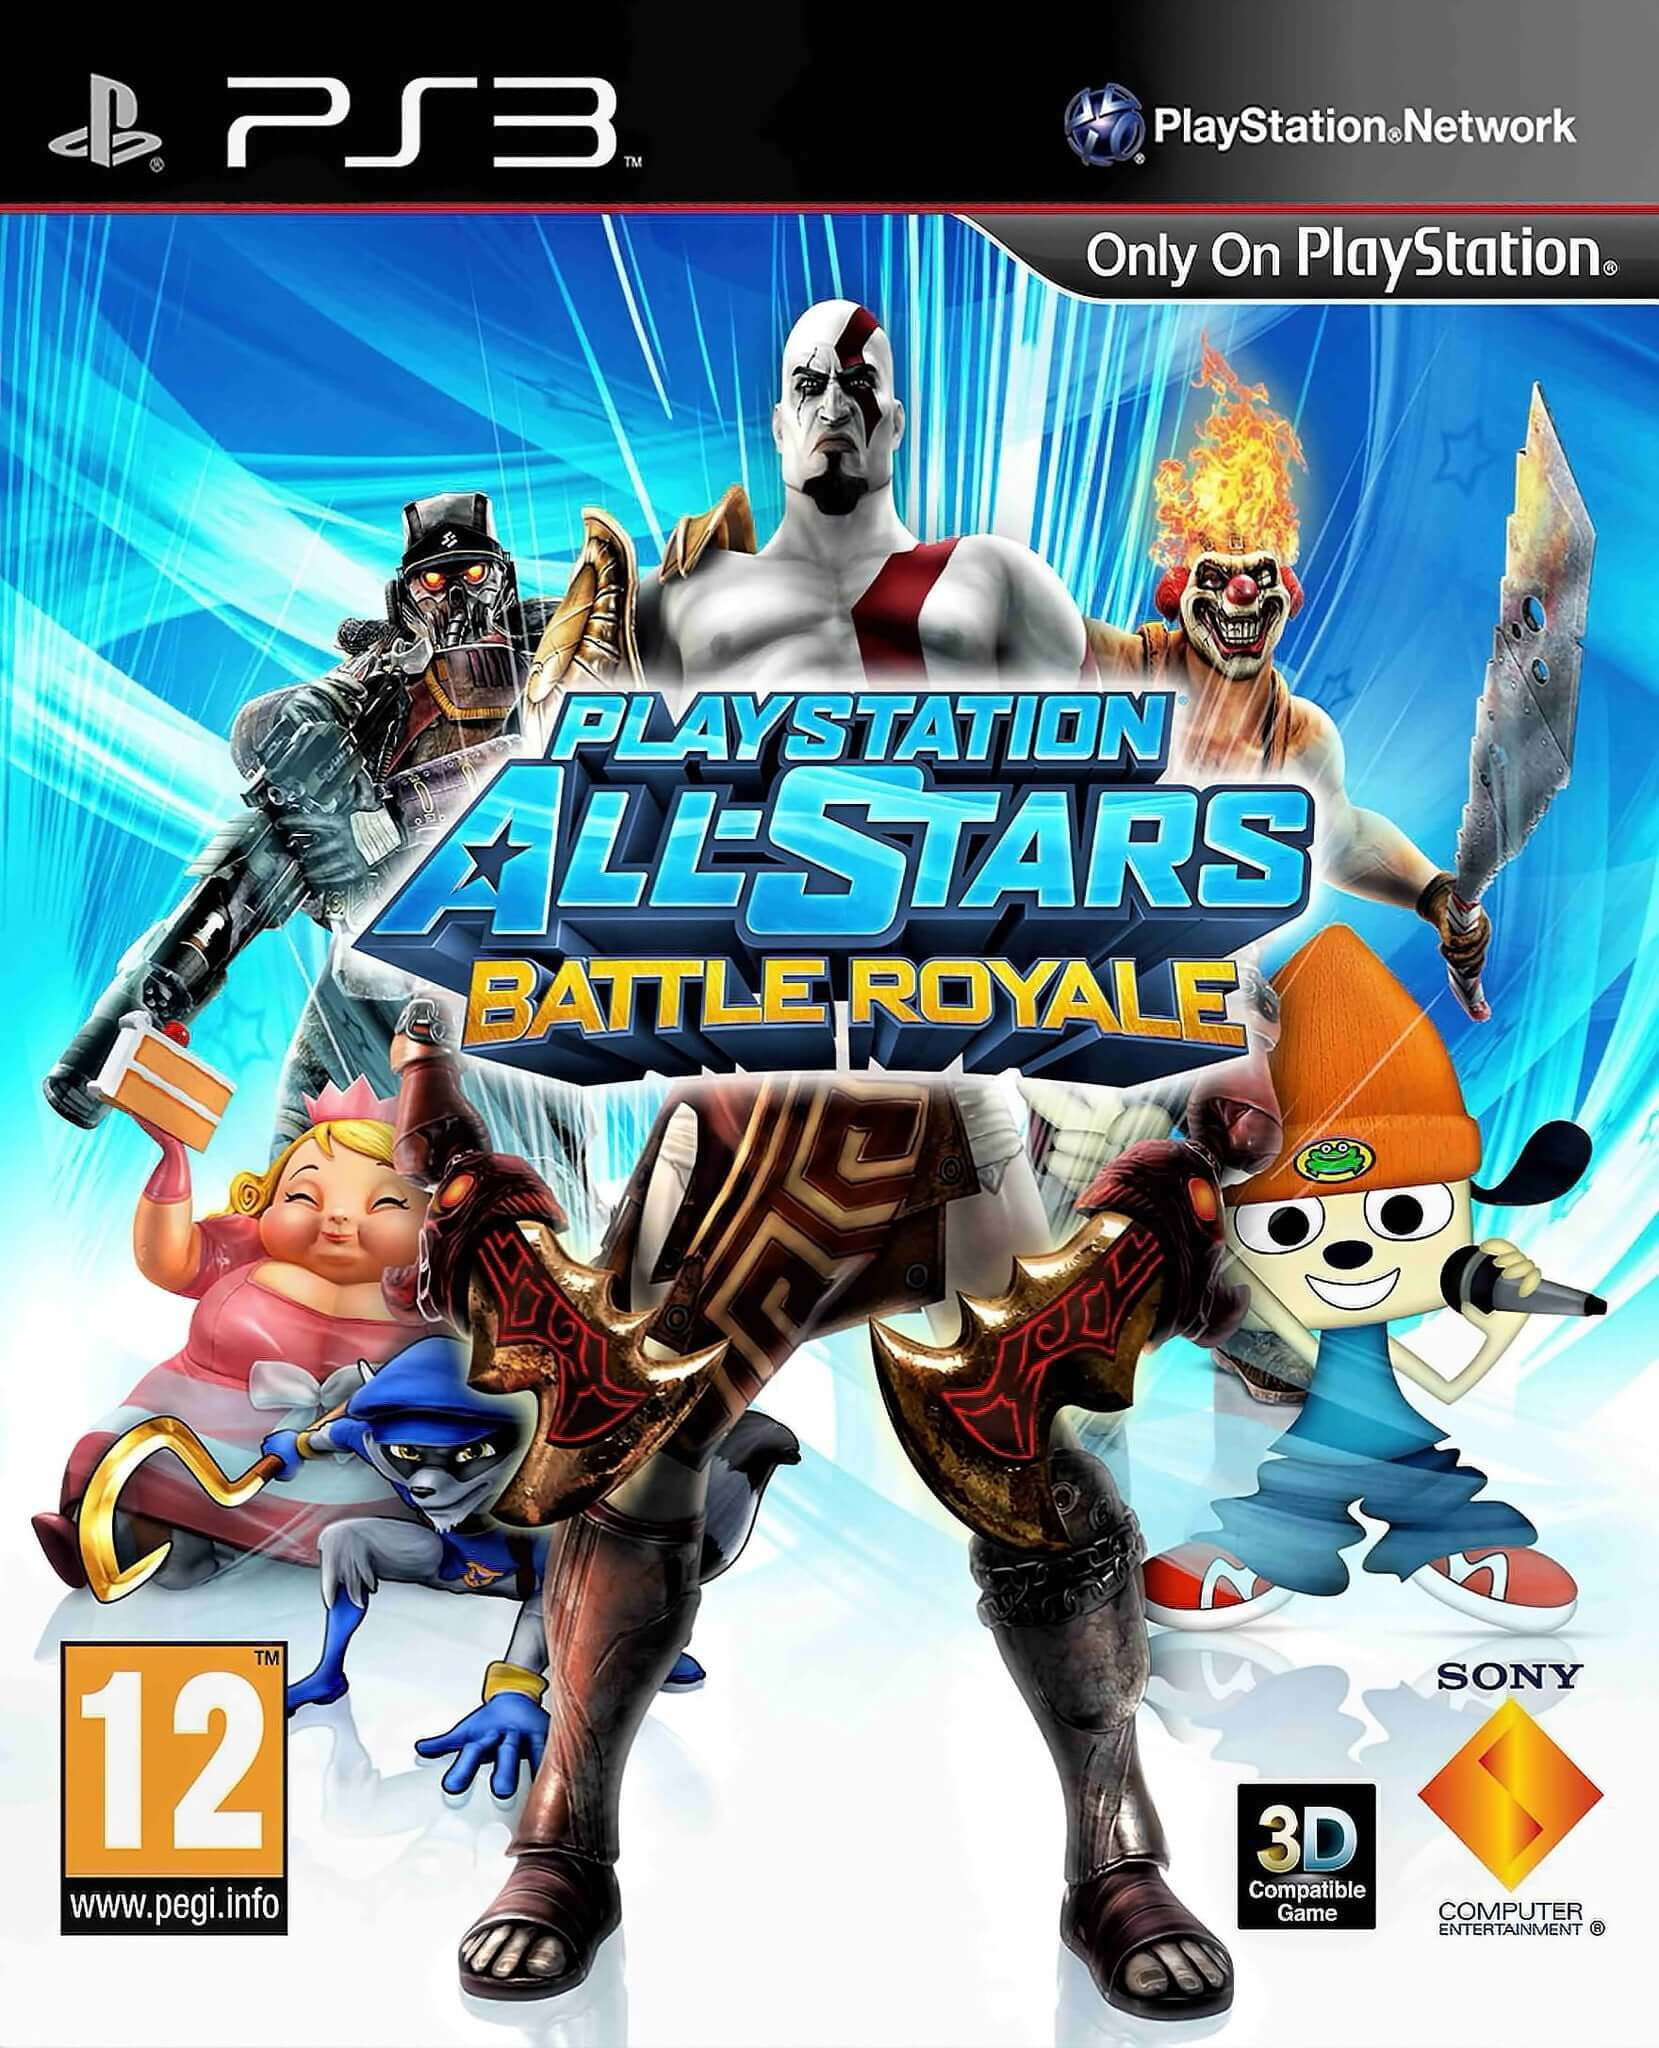 Buy All Stars Battle Royale(PS4) (PS3) a PS3 Game from ShamyStores